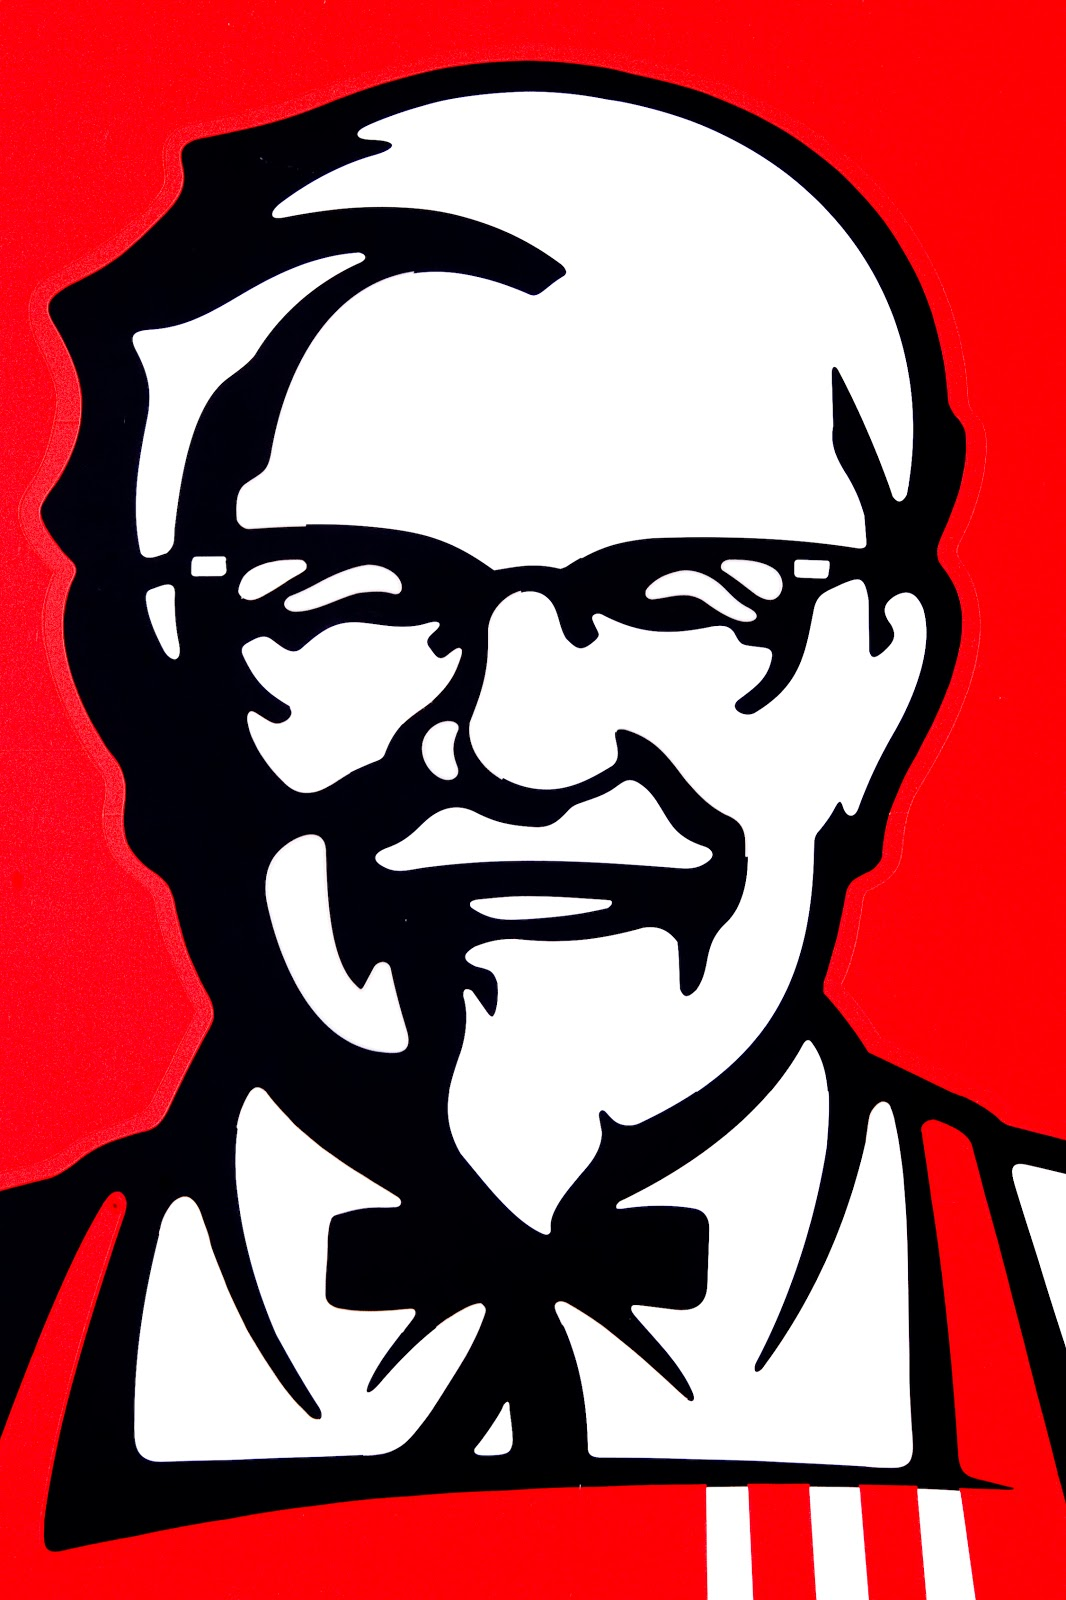 Everything About All Logos: KFC Logo Pictures